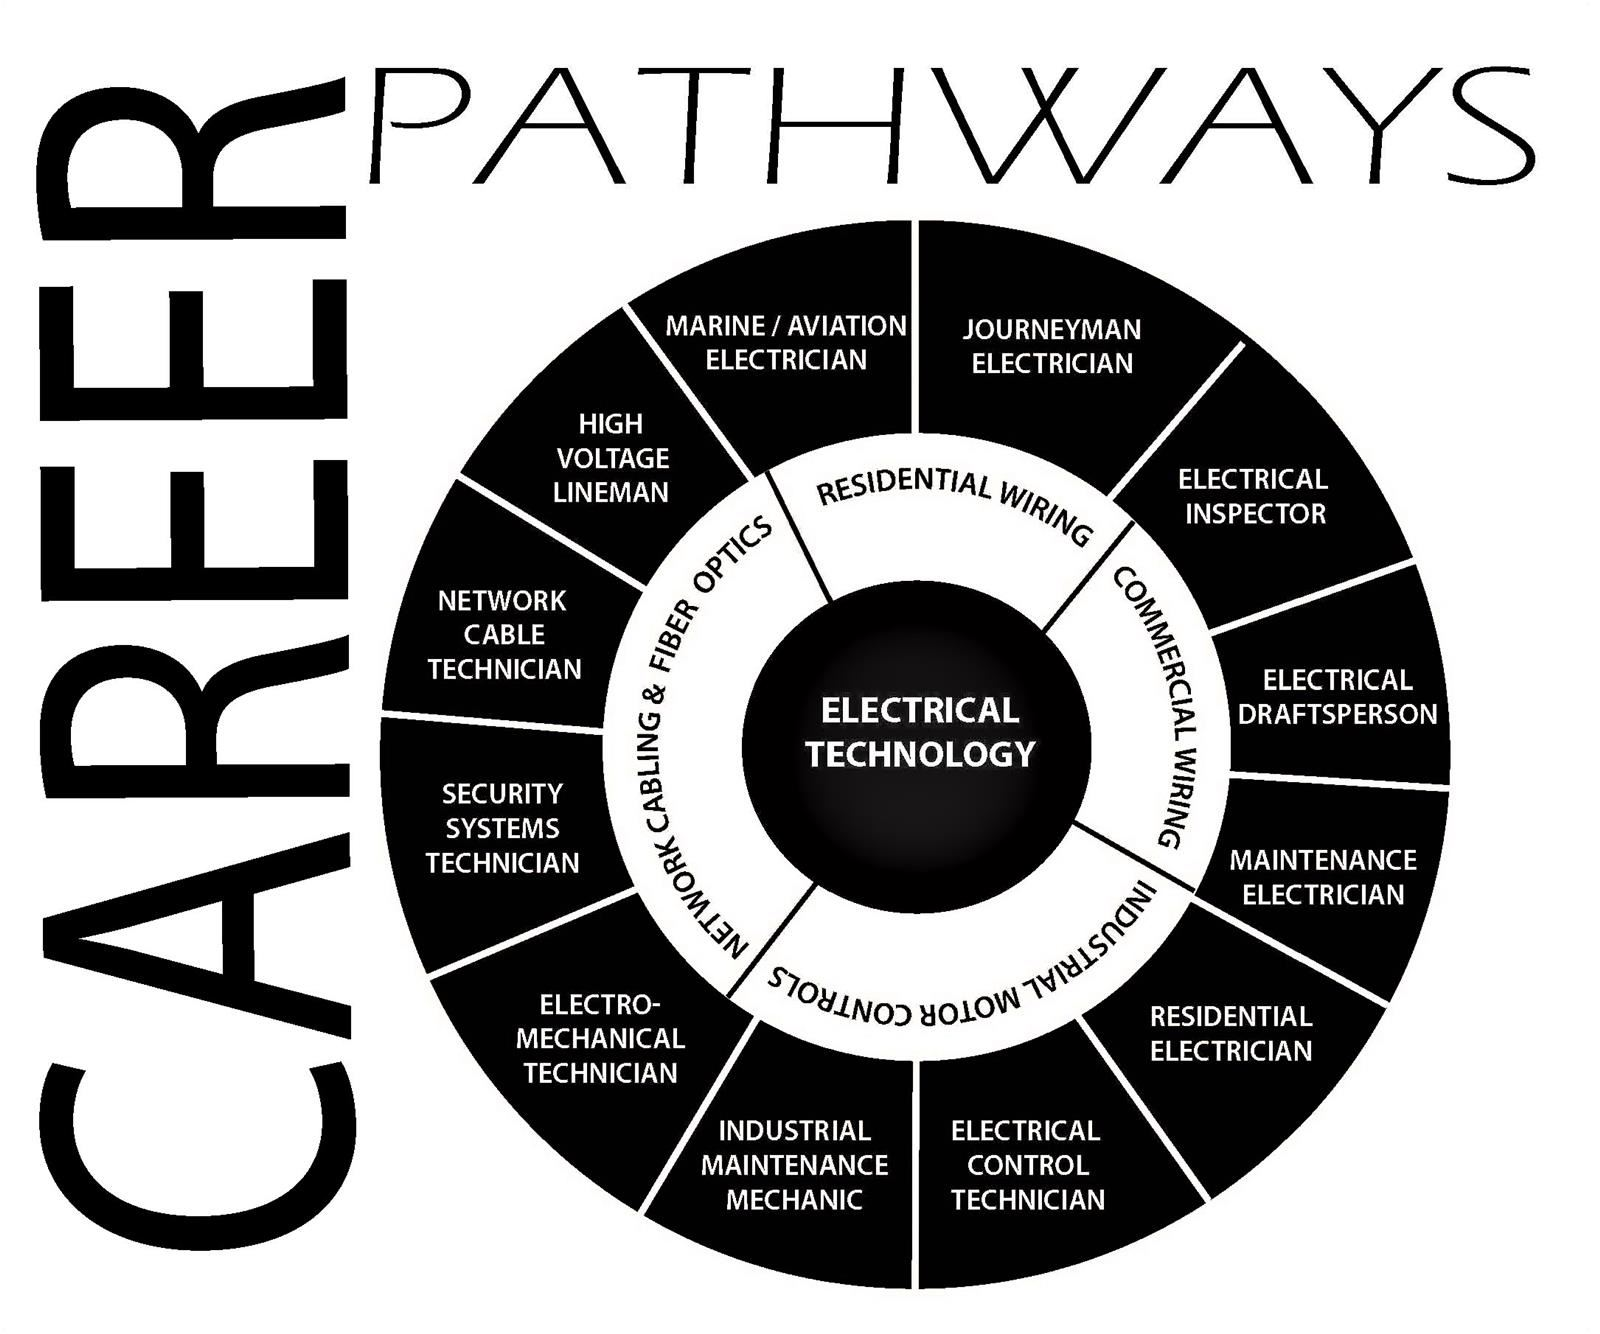 Career Pathway Wheel for Electrical Technology